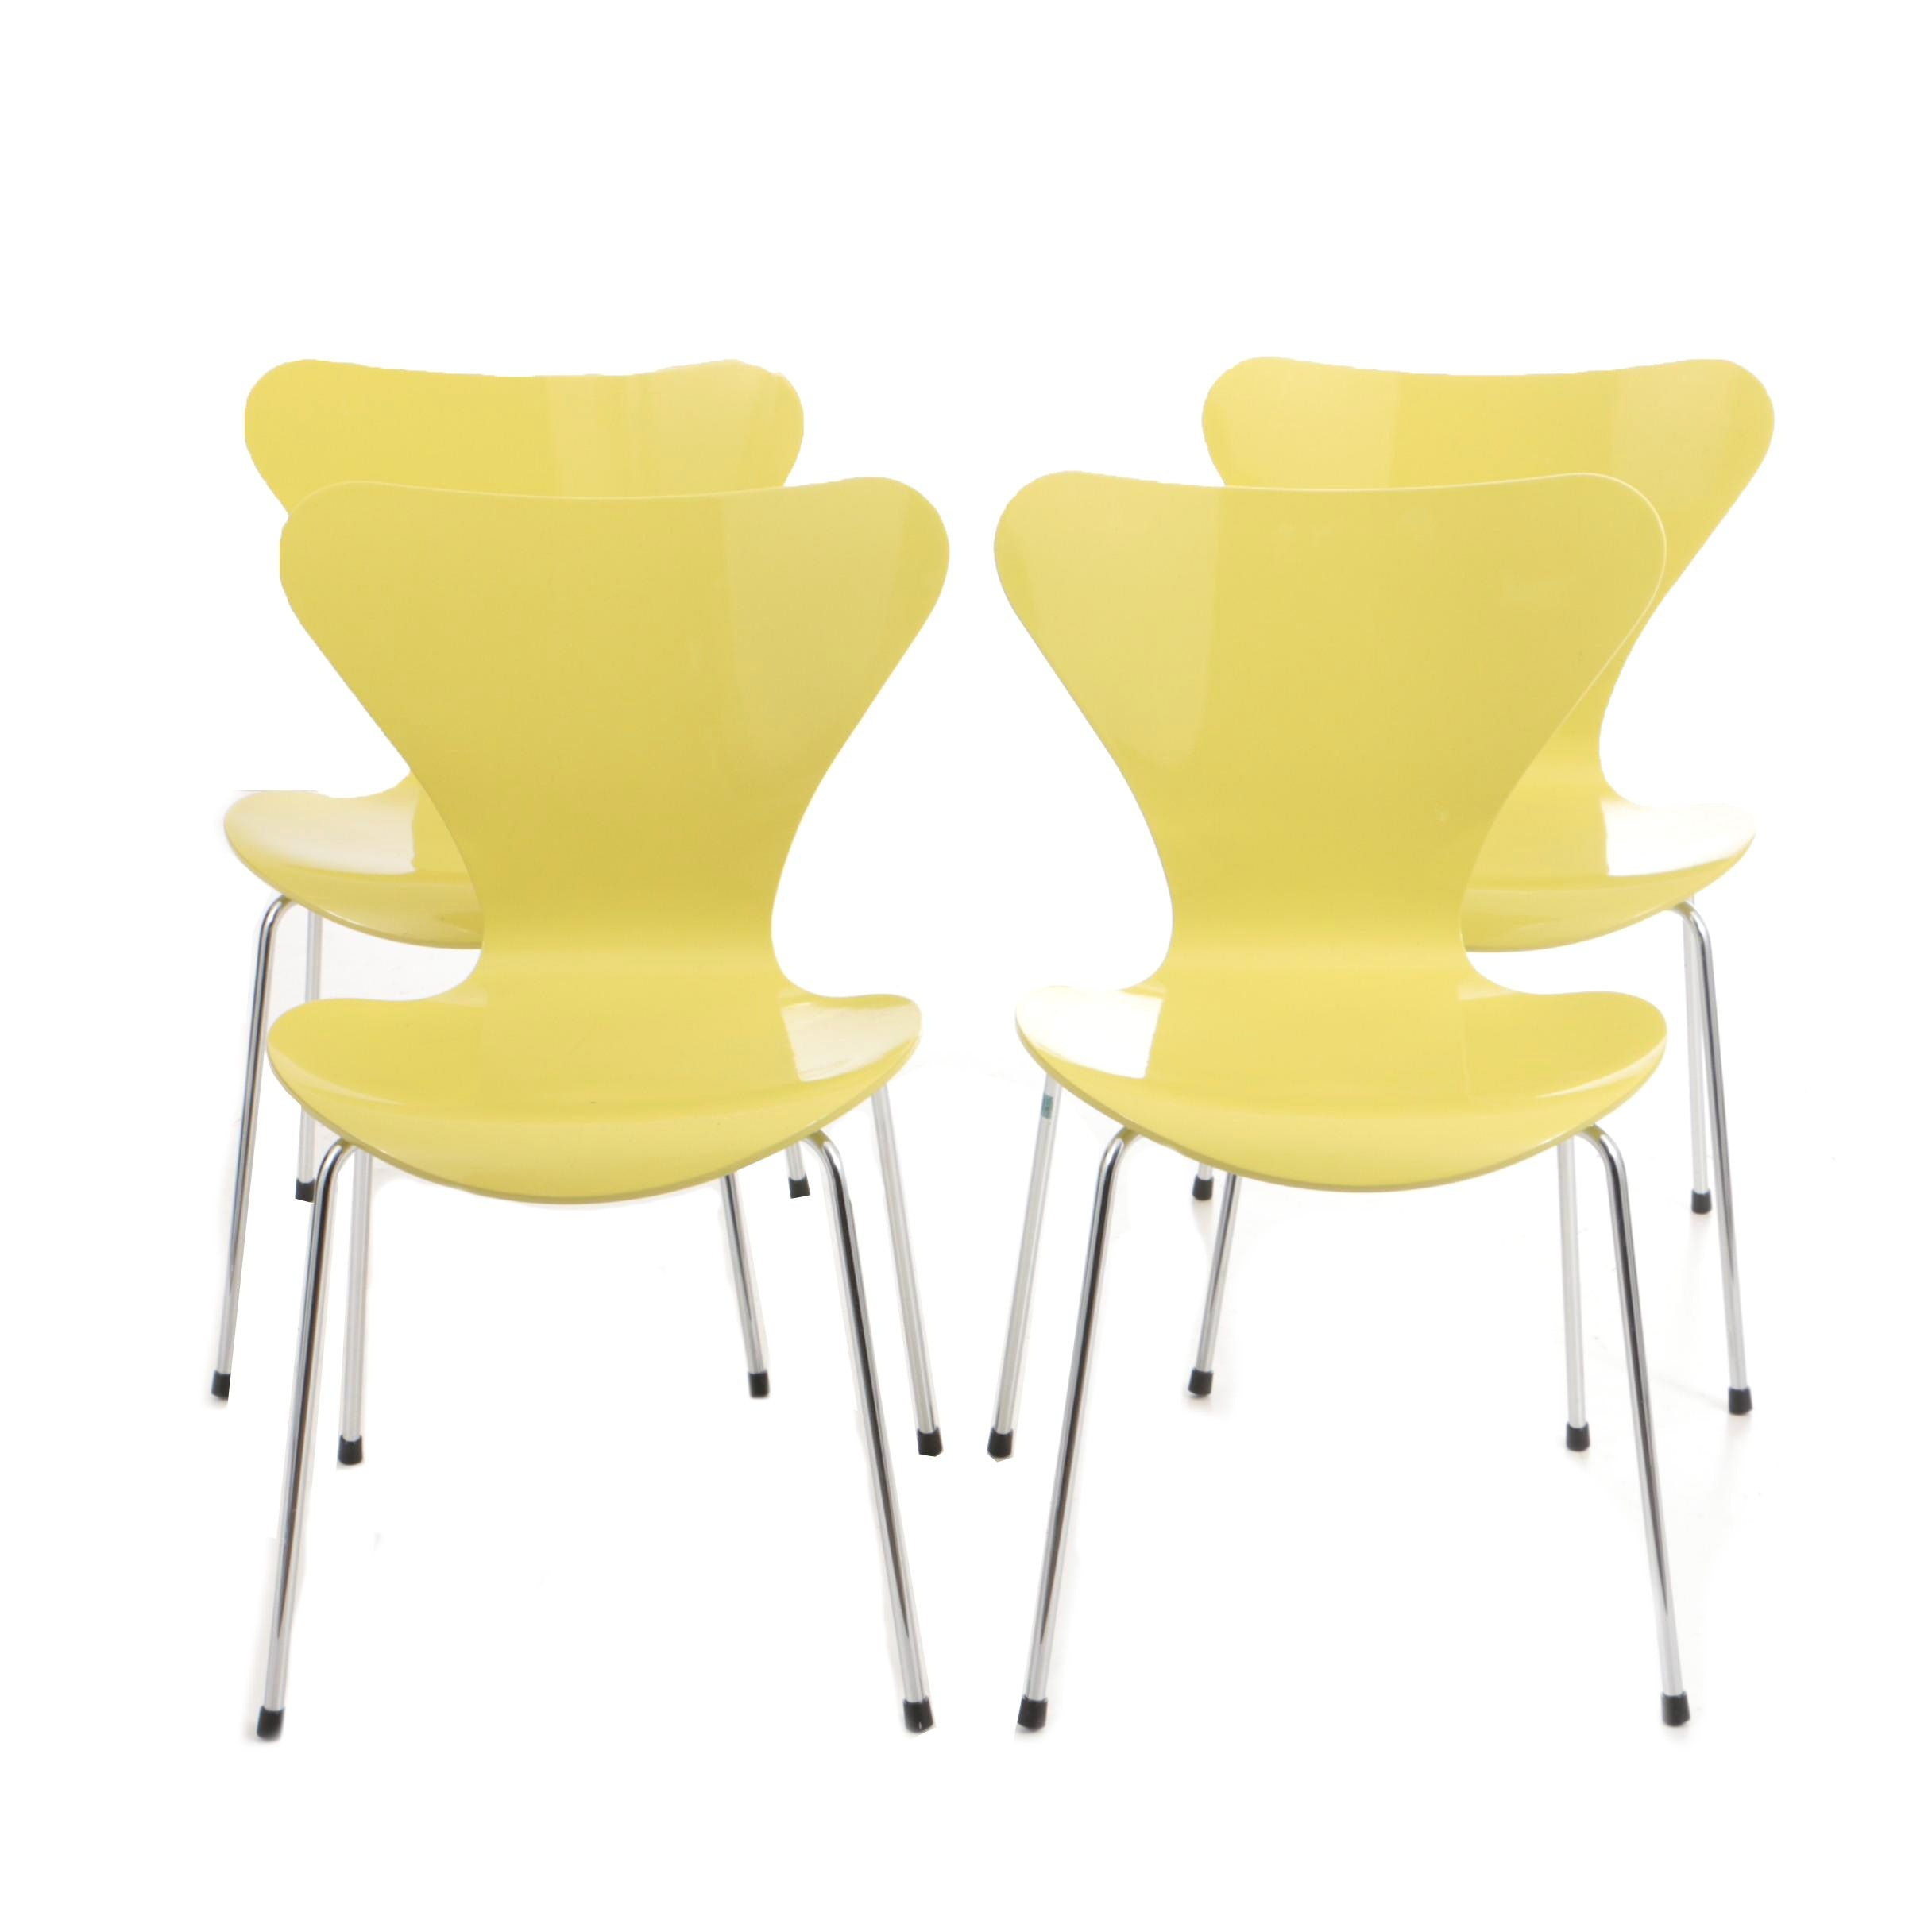 Set Of Four U0027Series 7u0027 Chairs By Arne Jacobsen For Fritz ...